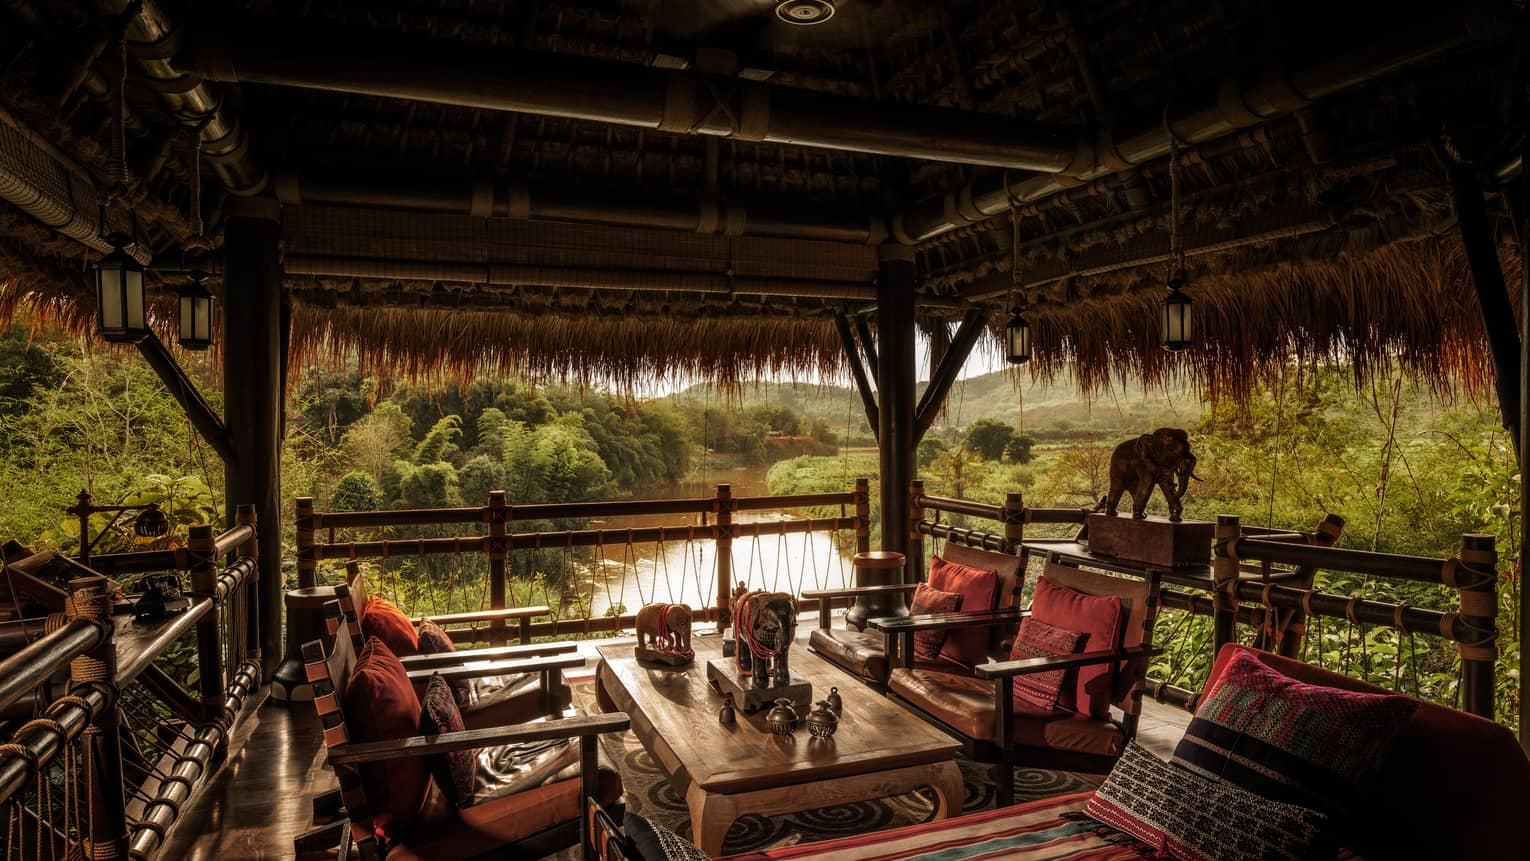 Burma Bar wood tables, chairs with red cushions under thatched-roof cabana